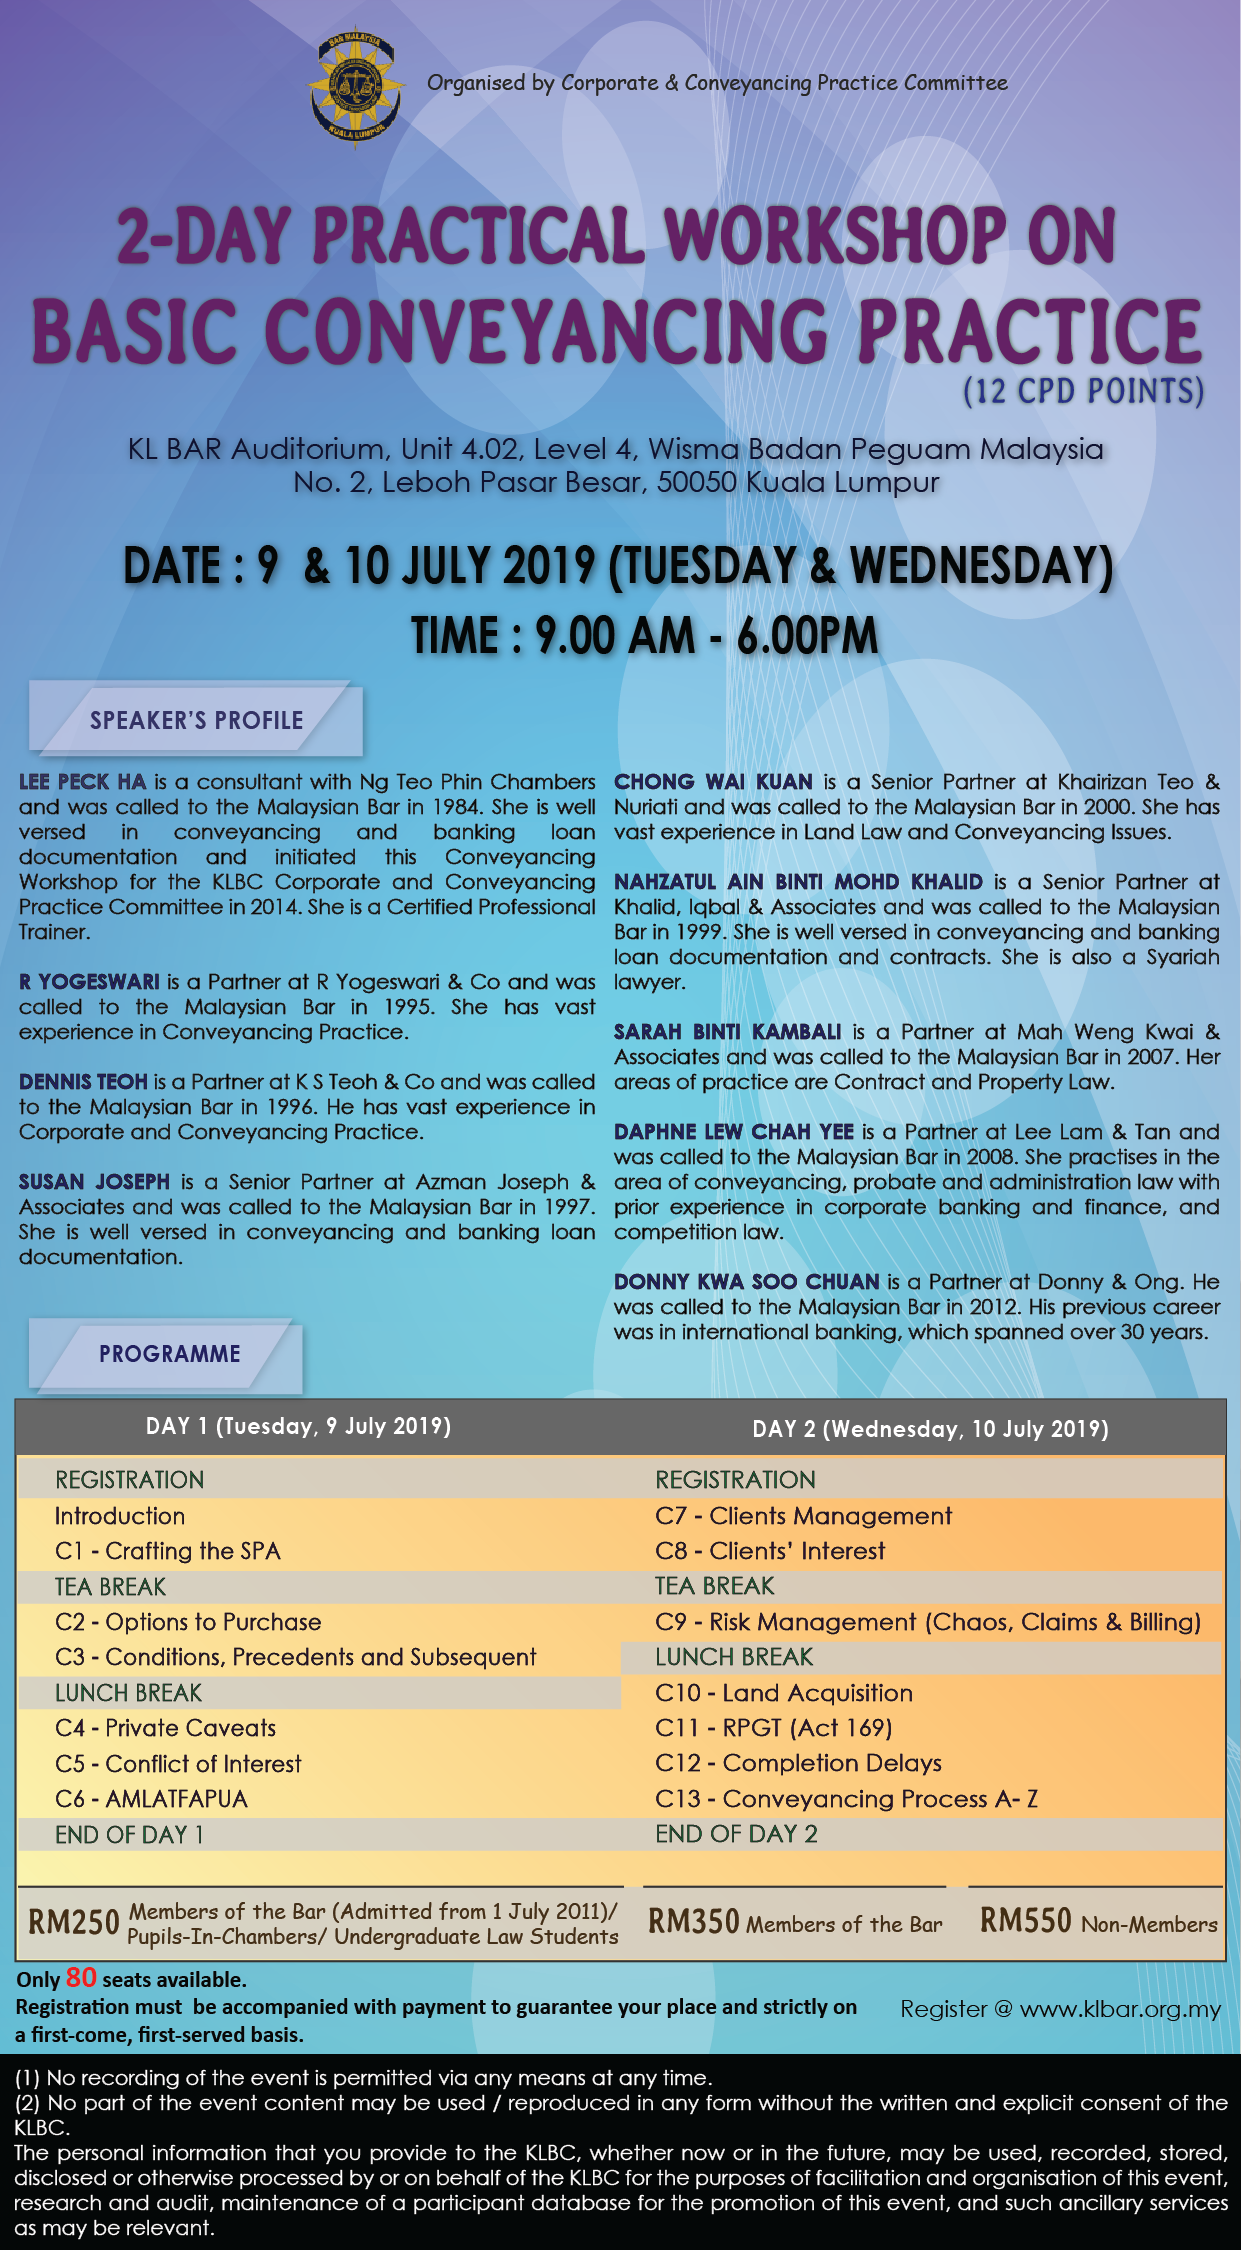 2-Day Practical Workshop on Basic Conveyancing Practice on 9